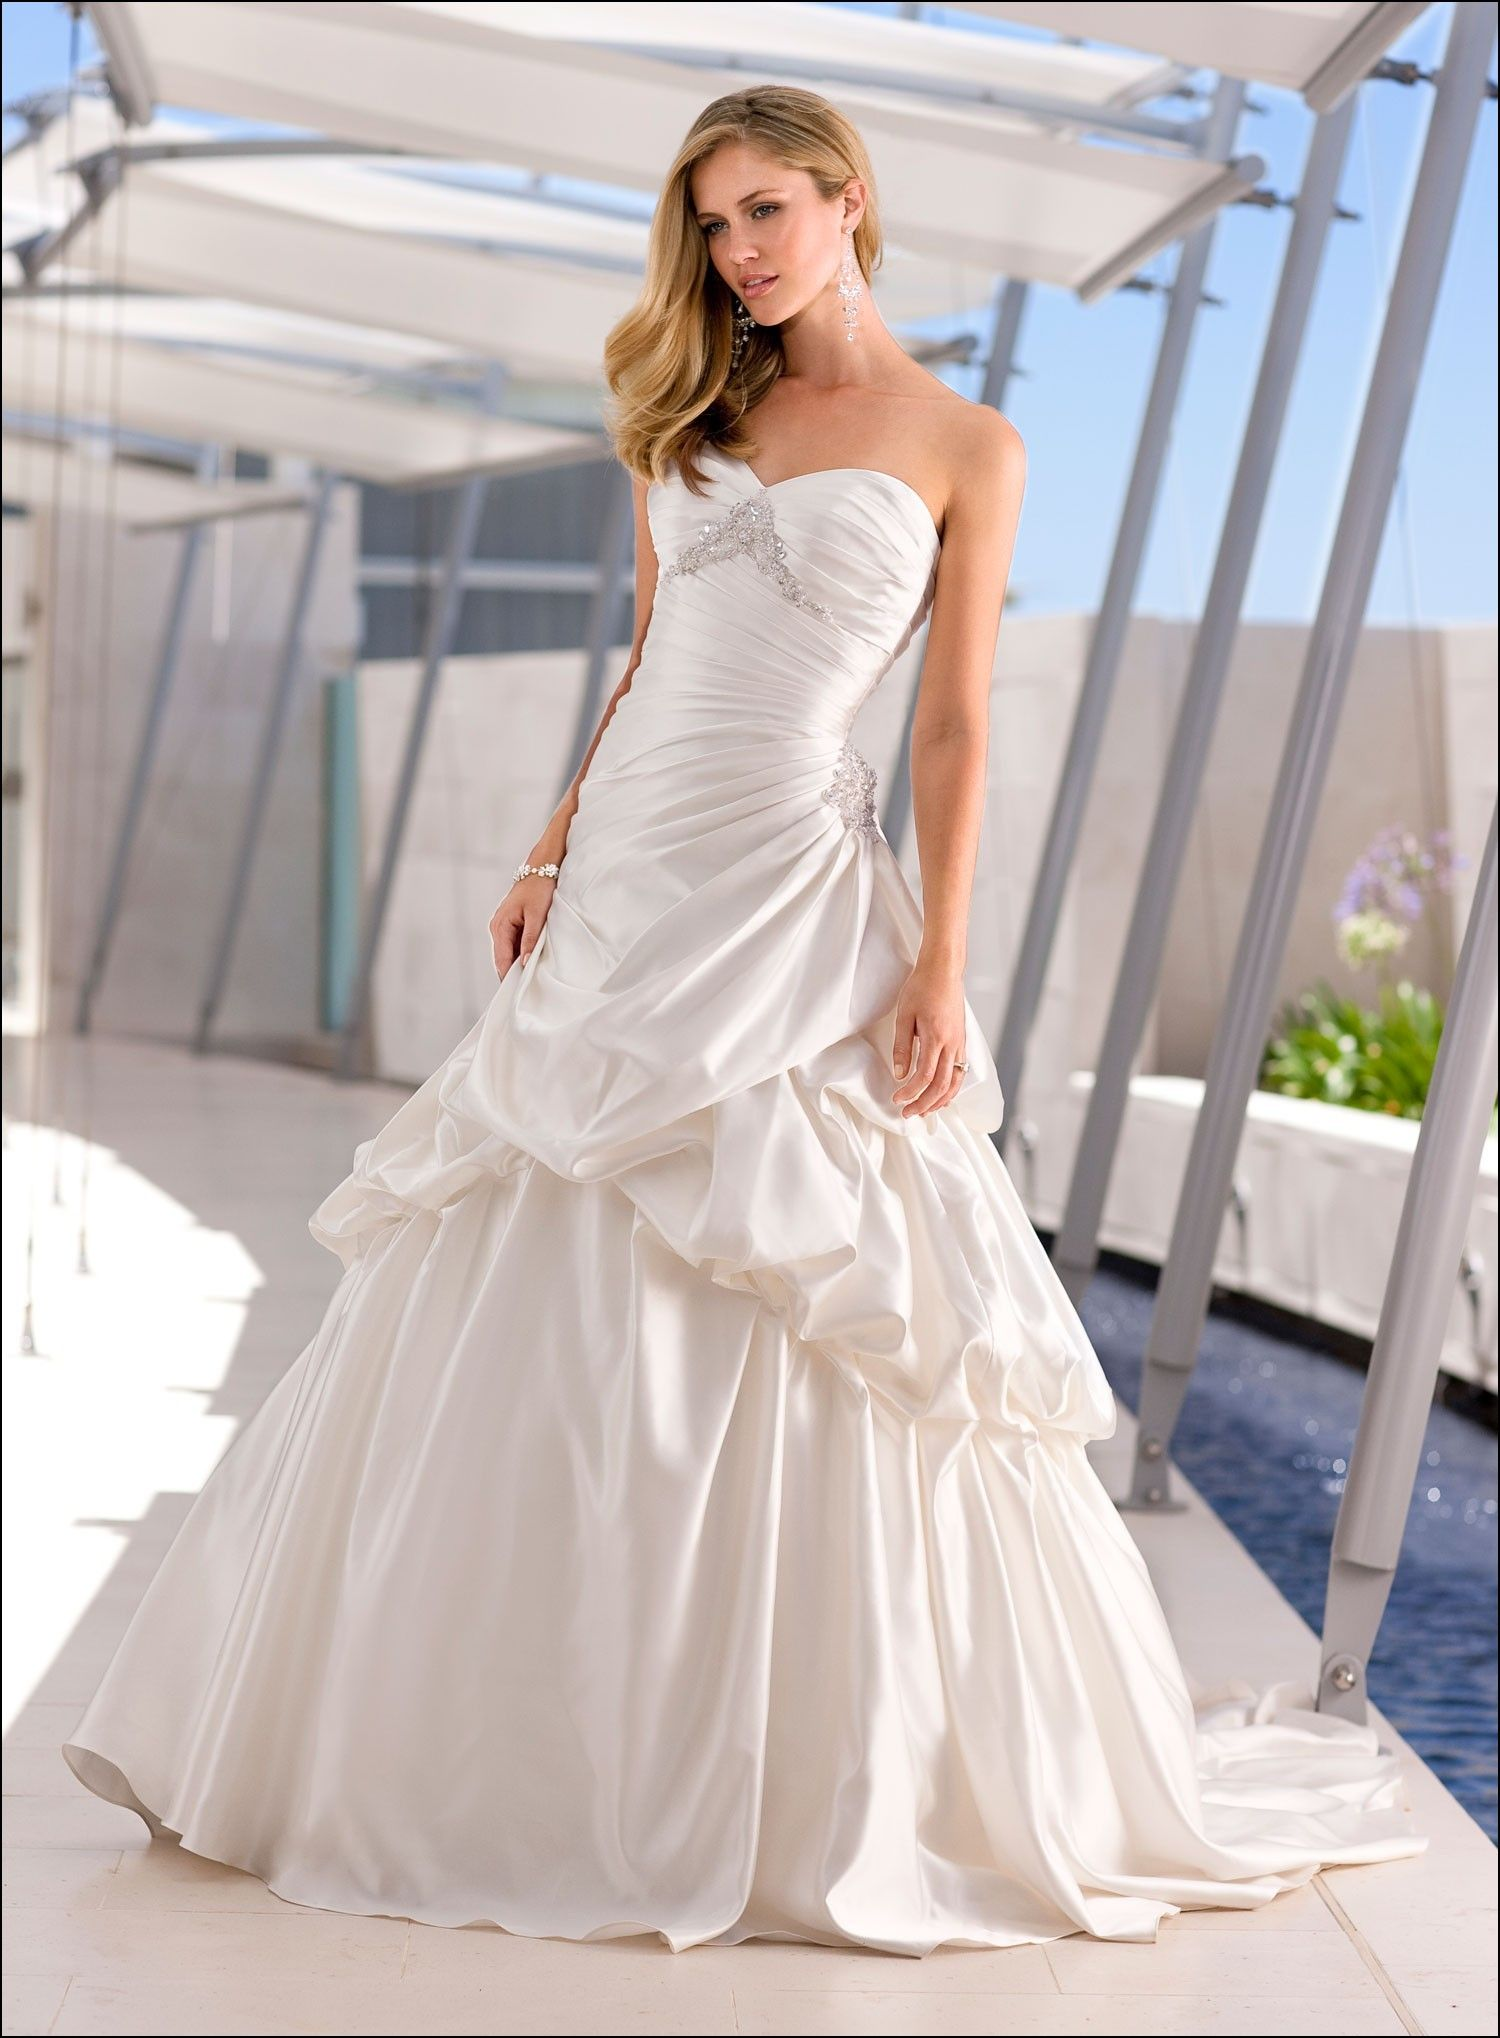 Bargain Bridal Gowns | Dresses and Gowns Ideas | Pinterest | Gowns ...